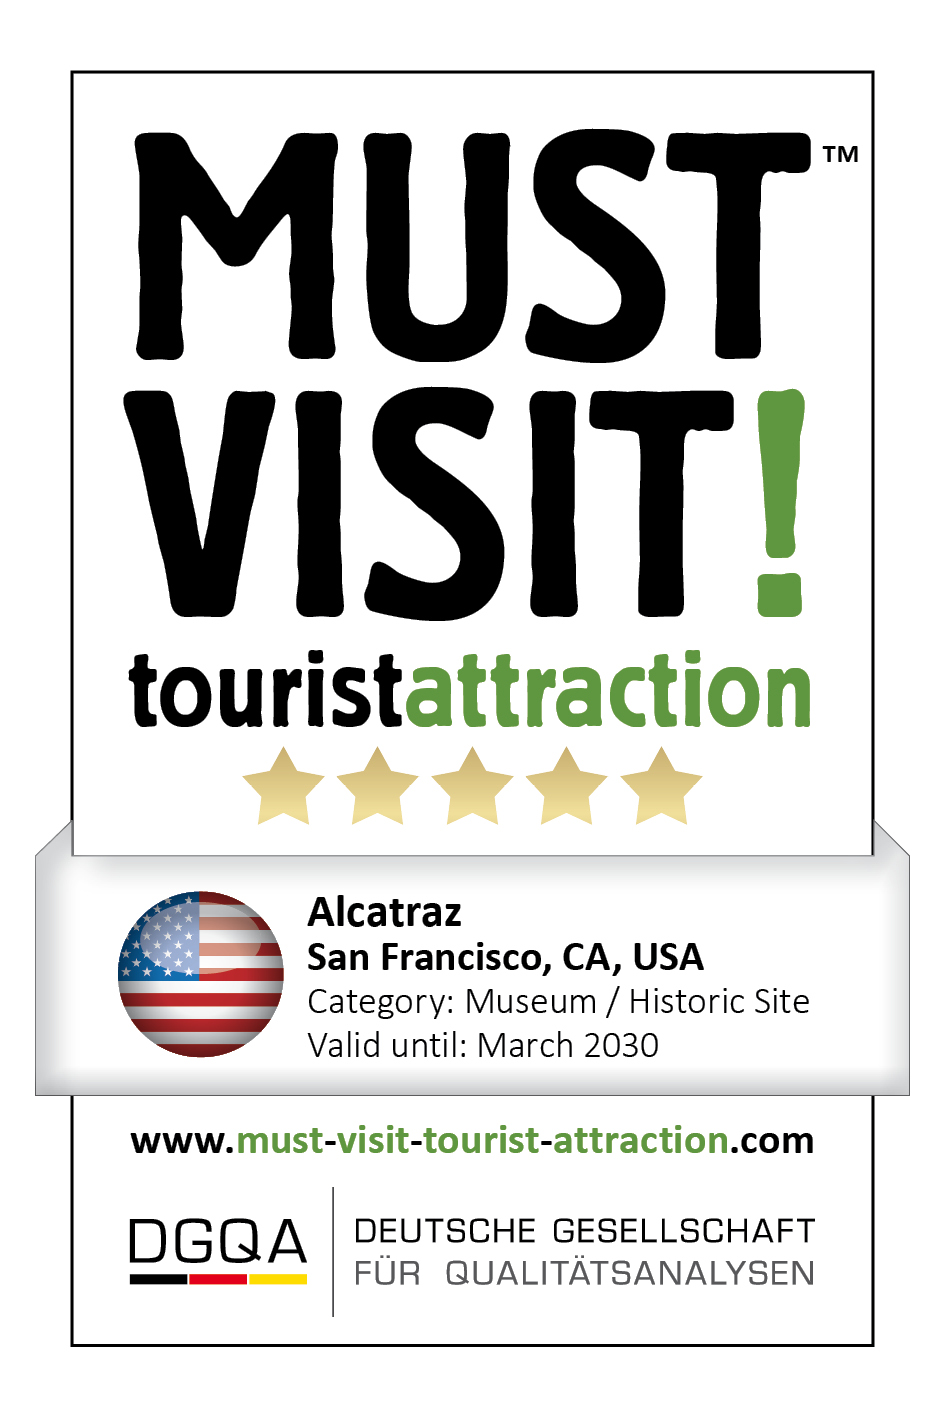 MUST VISIT! tourist attraction (dgqa) alcatraz